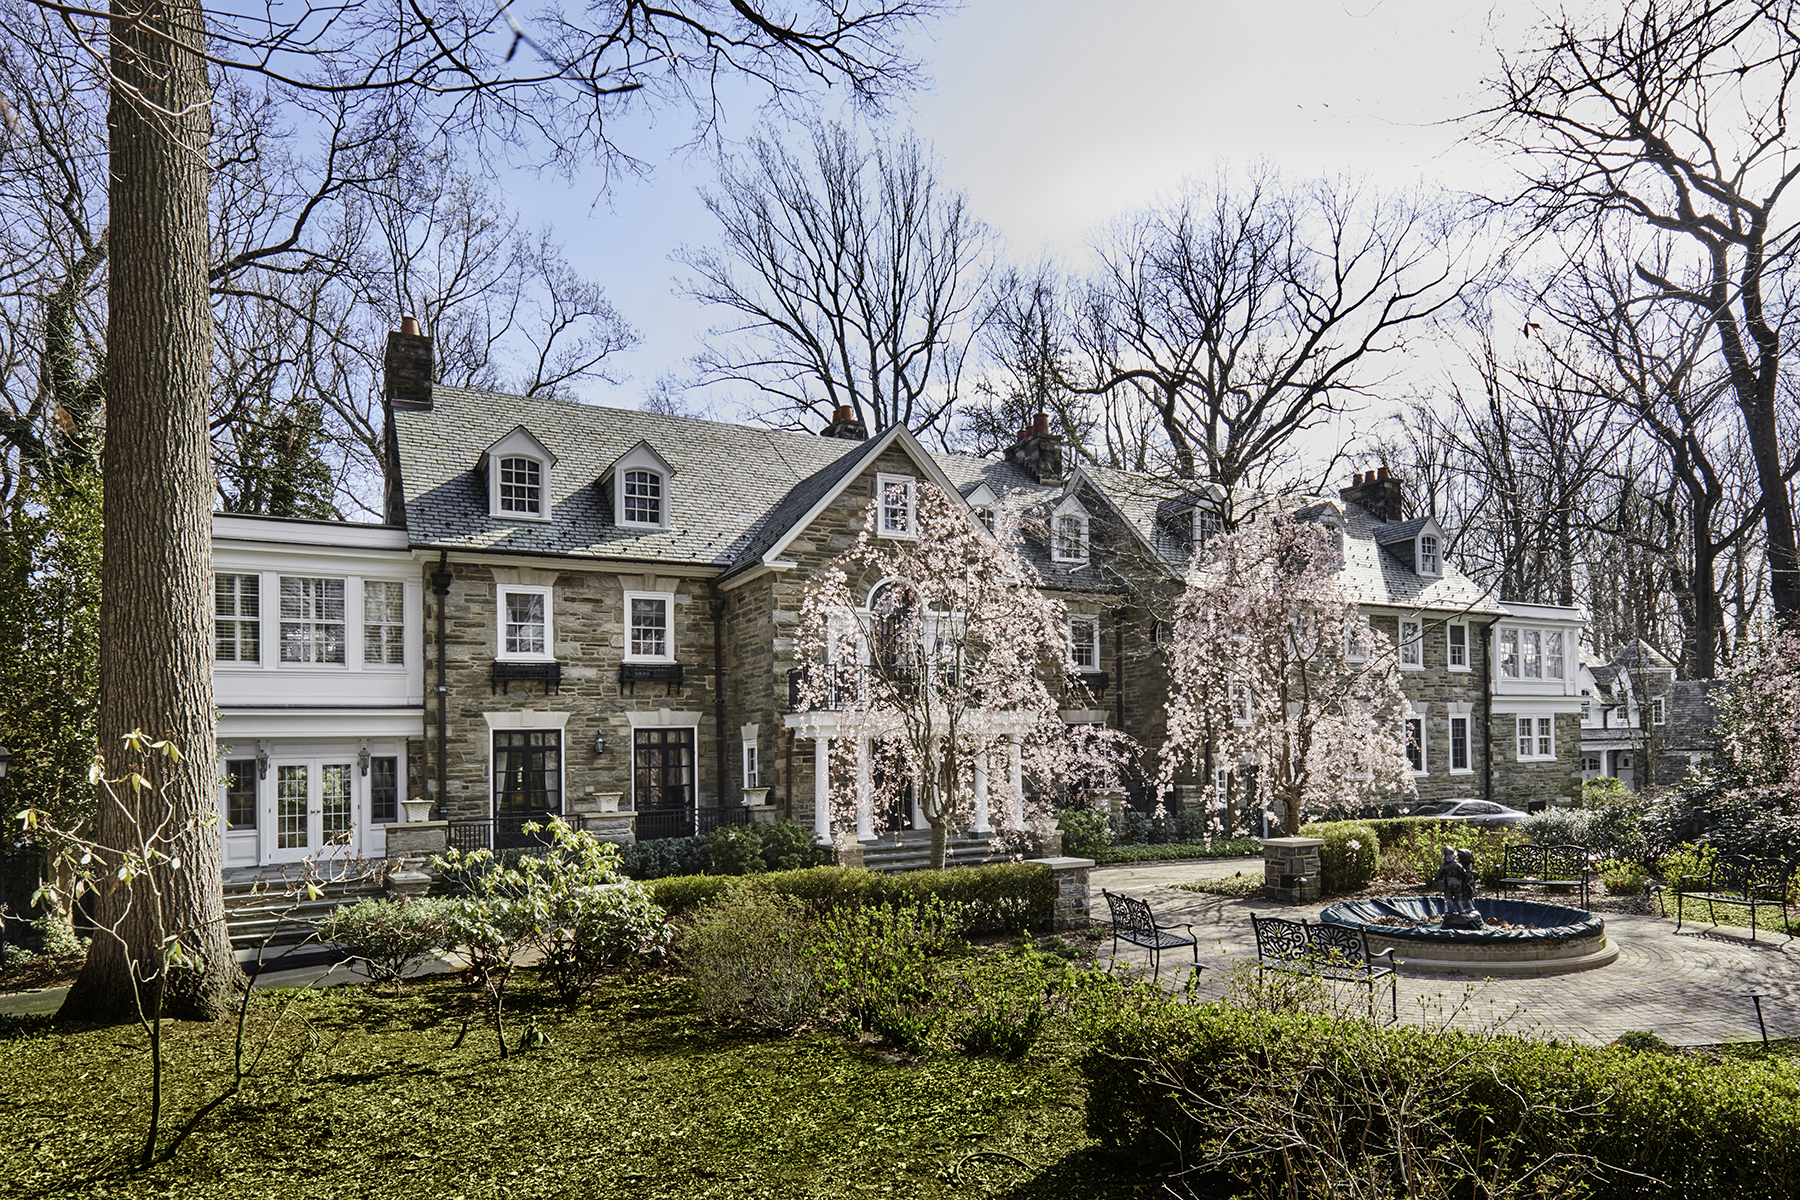 Single Family Home for Sale at Radnor Estate Mansion 489 Upper Gulph Road Wayne, 19087 United States